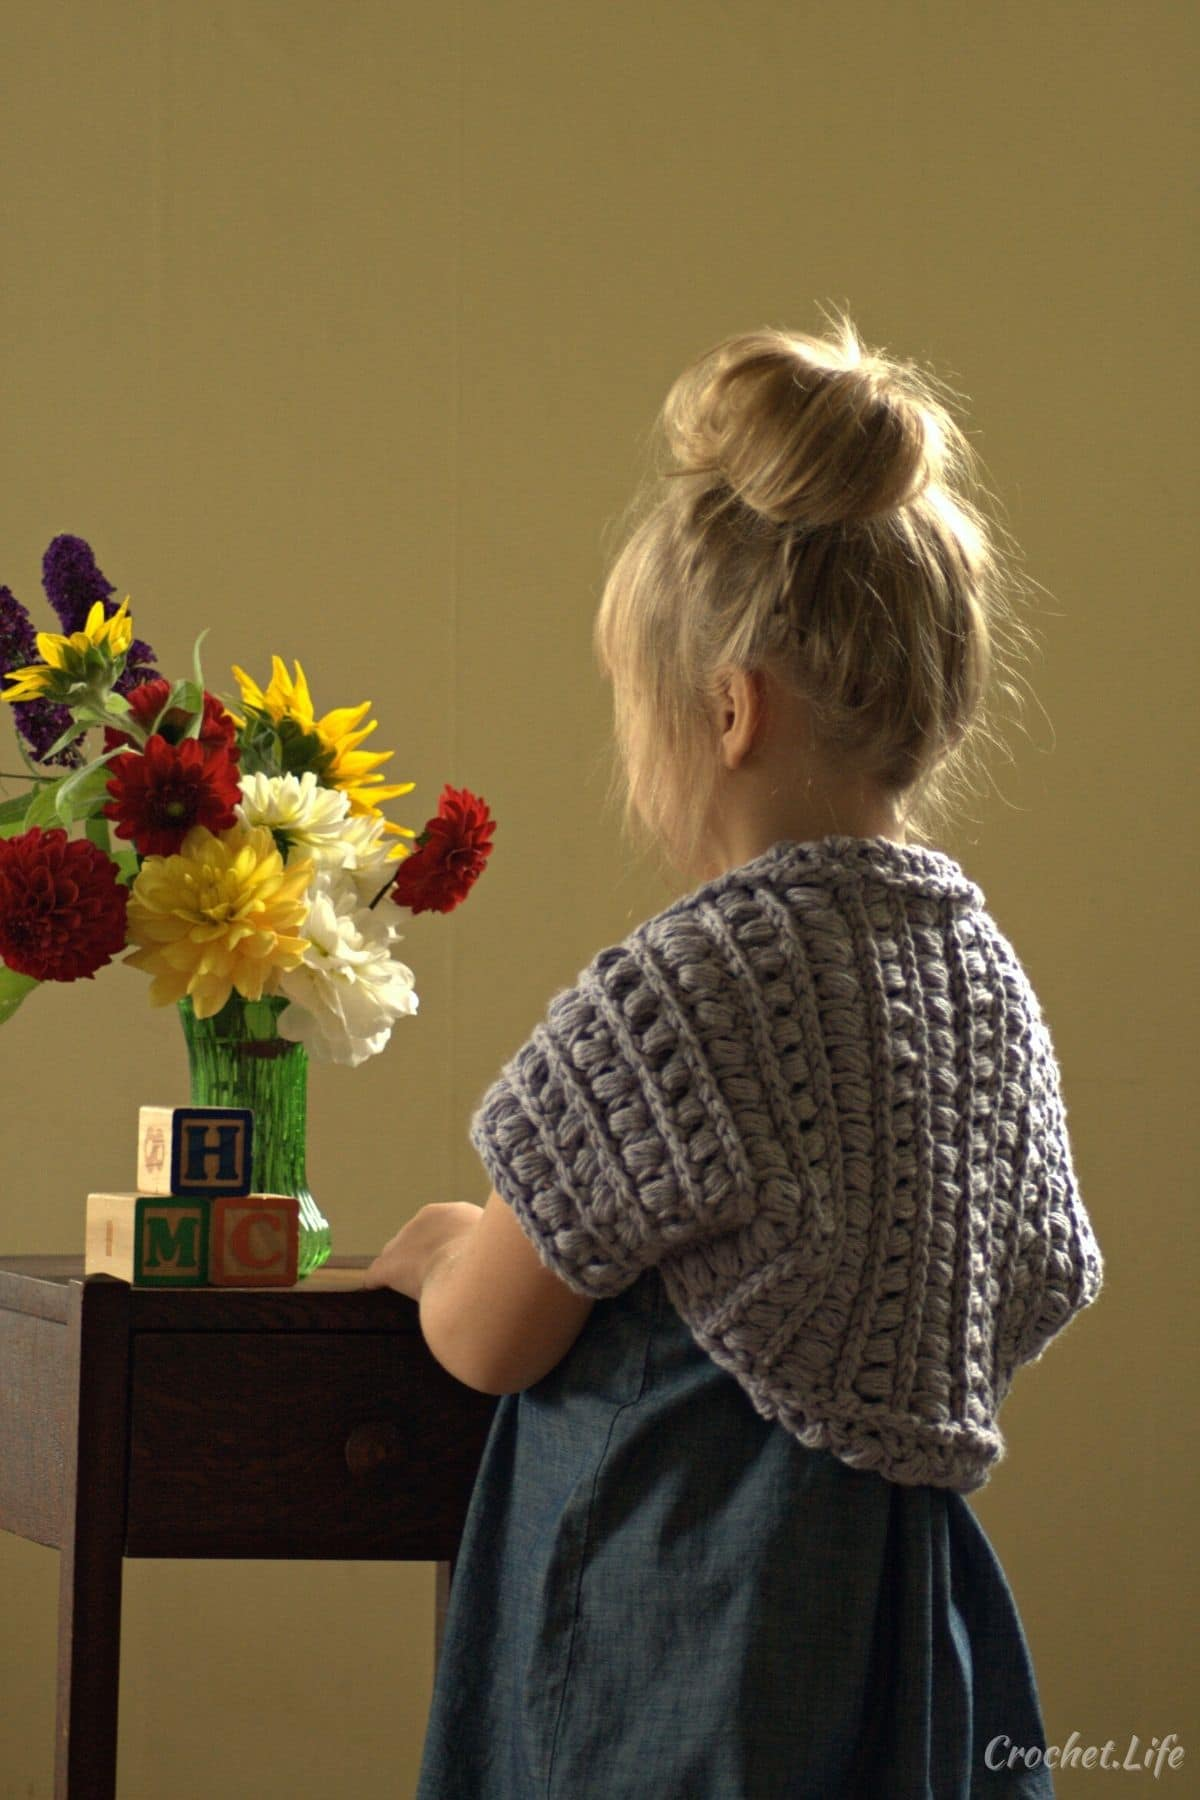 Blonde little girl in blue dress with gray shrug by table with flowers